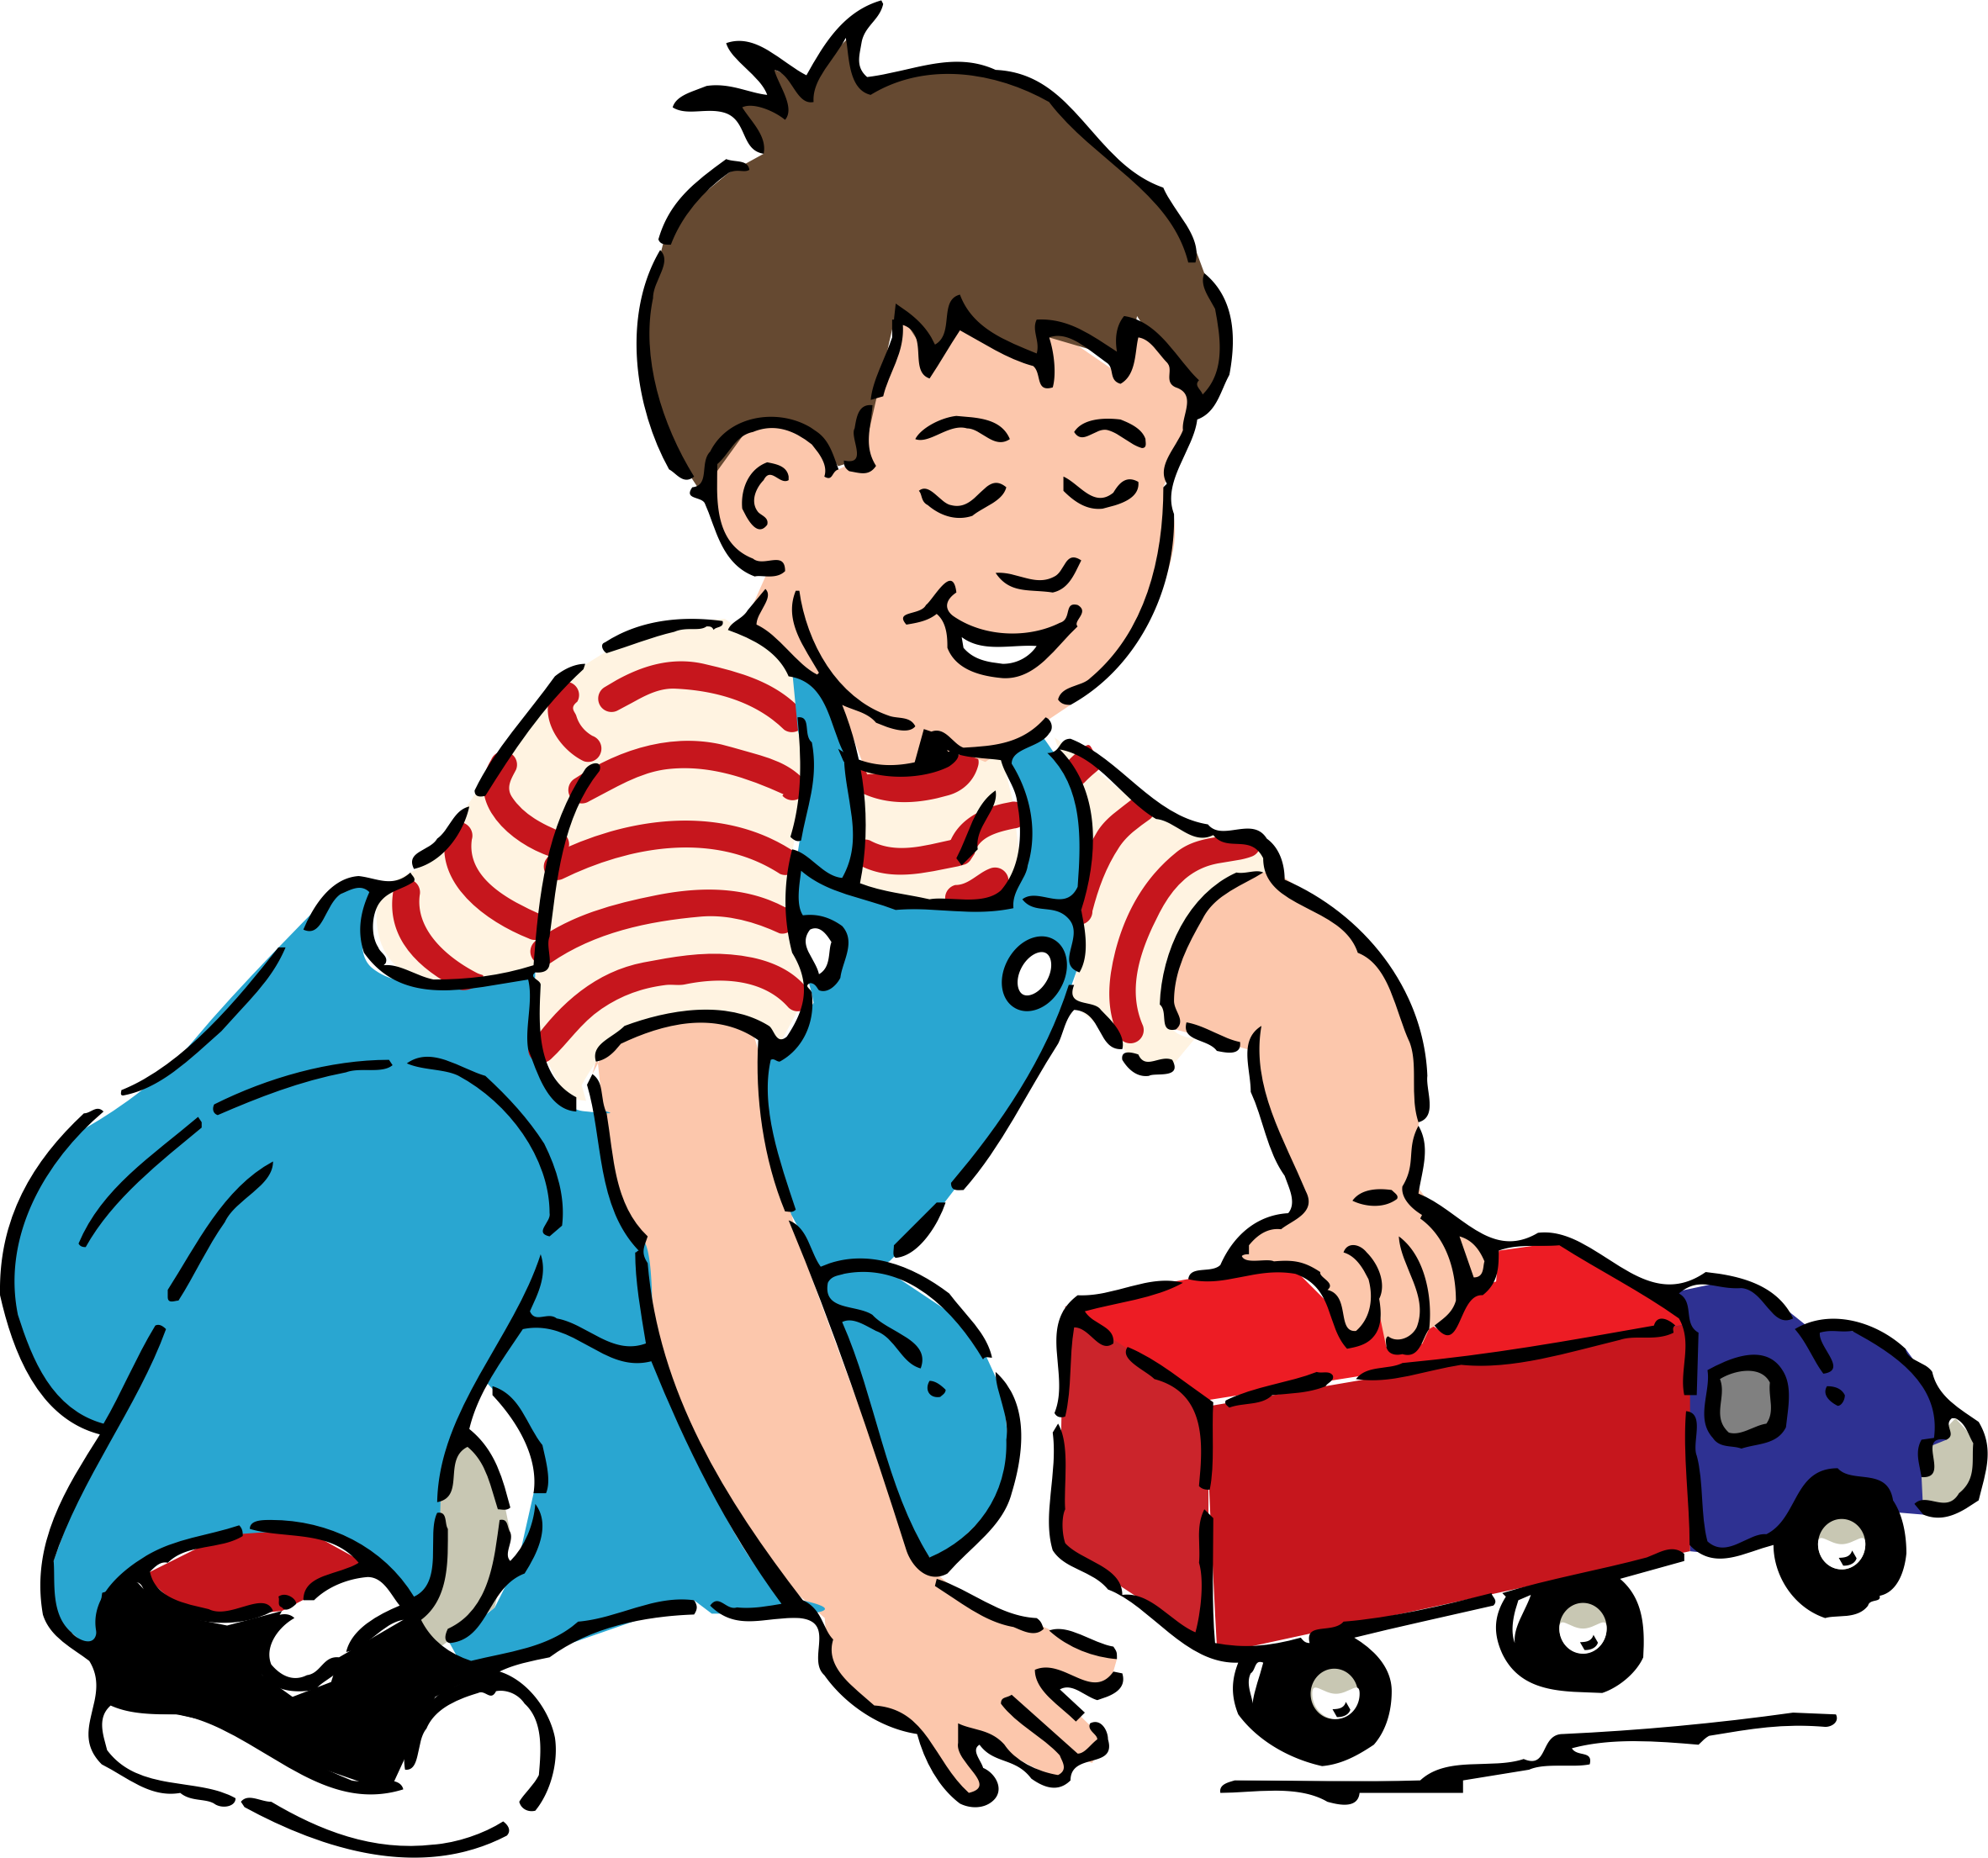 Boy car clipart image freeuse Clipart - boy playing with toy truck image freeuse